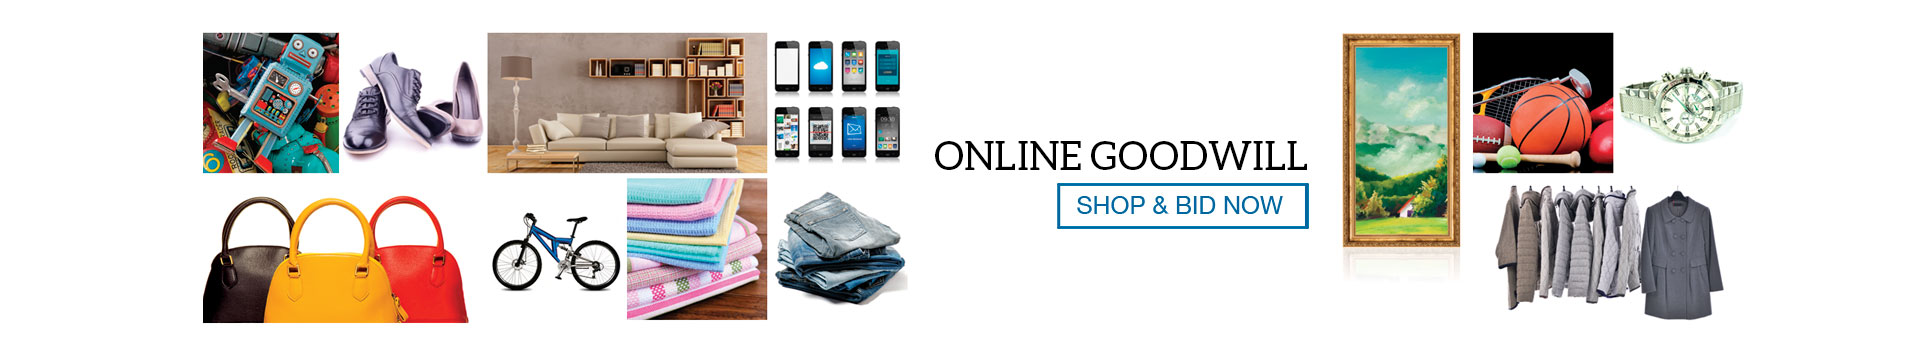 Goodwill Industries Of Middle Tennessee Inc Online Goodwill